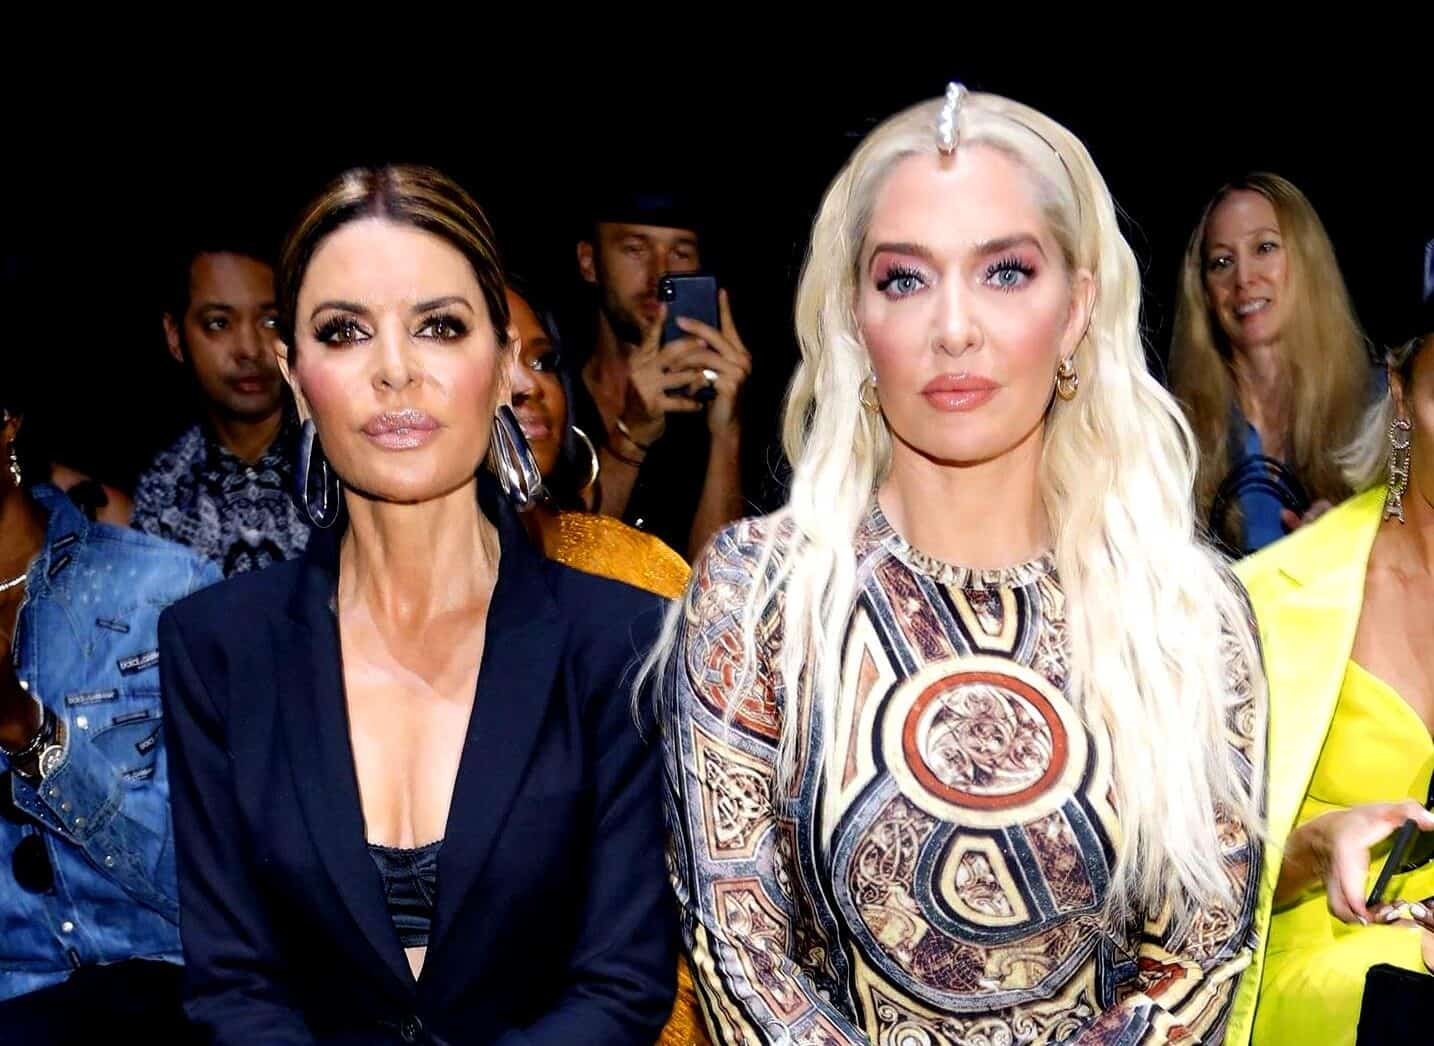 """RHOBH's Lisa Rinna Asks Fans to Be """"Patient"""" and Defends Erika After Death Threats, Claims They're """"Devastated for the Victims"""" as Attorney Accuses Her of """"Pretending"""" to Care"""